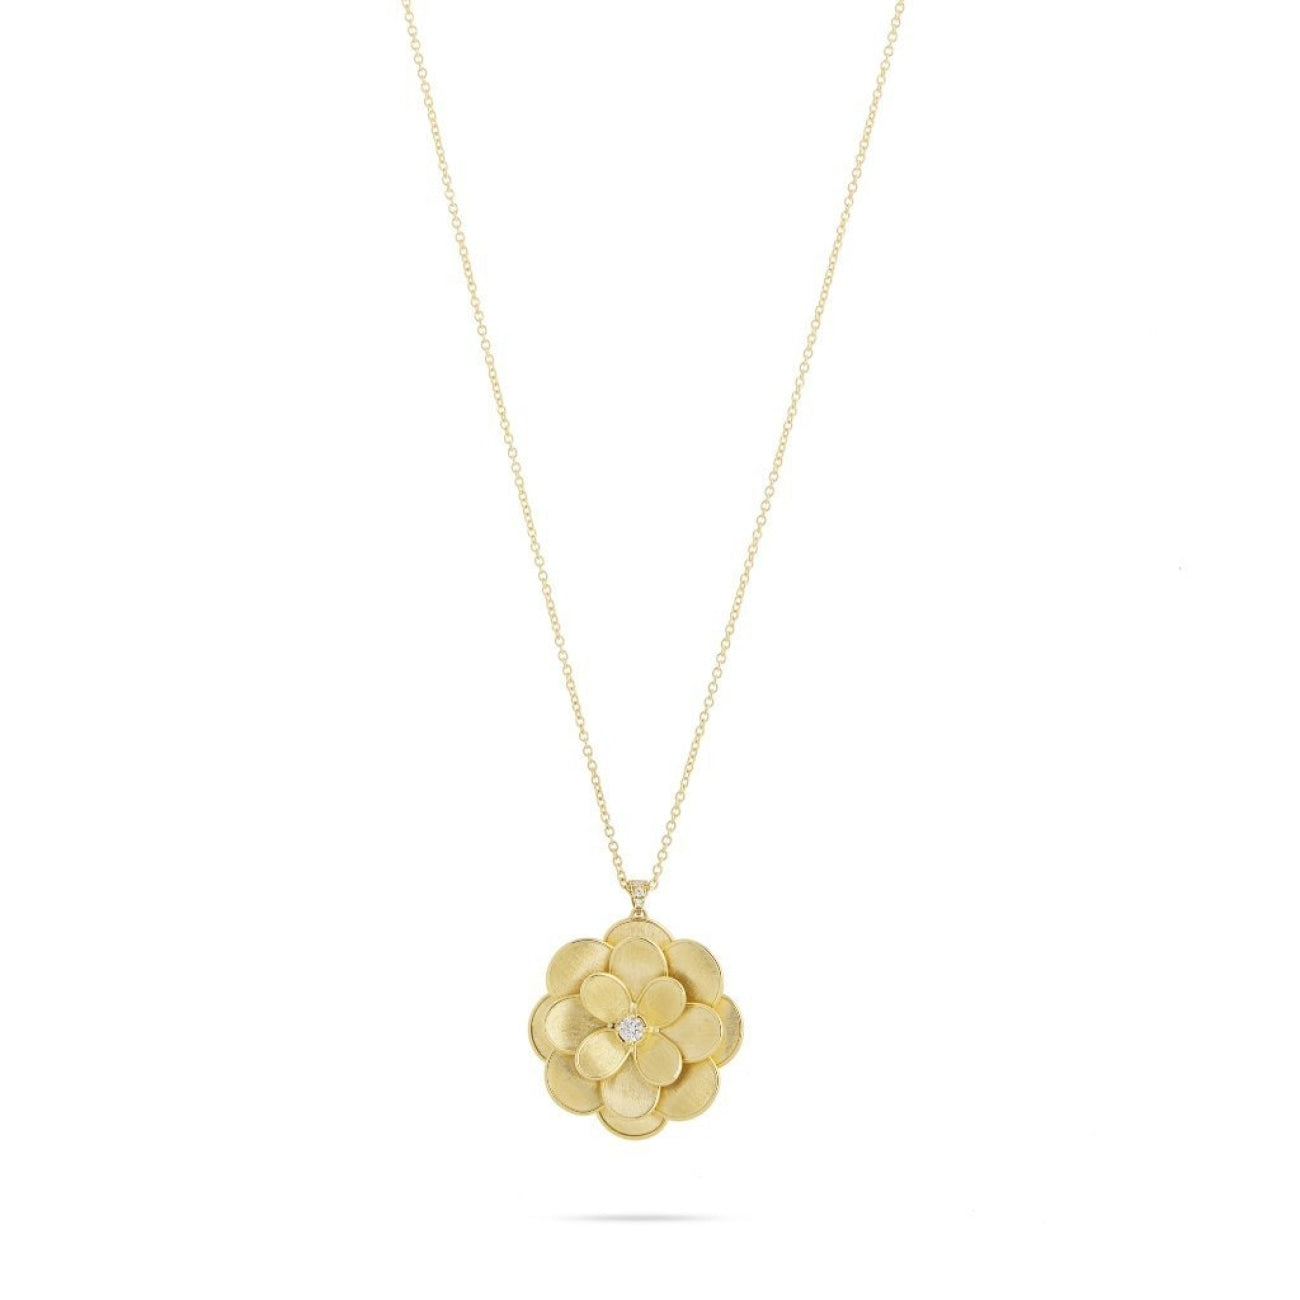 Marco Bicego Jewelry - Petali Collection 18k Yellow Gold and Diamond Long Flower Pendant | Manfredi Jewels